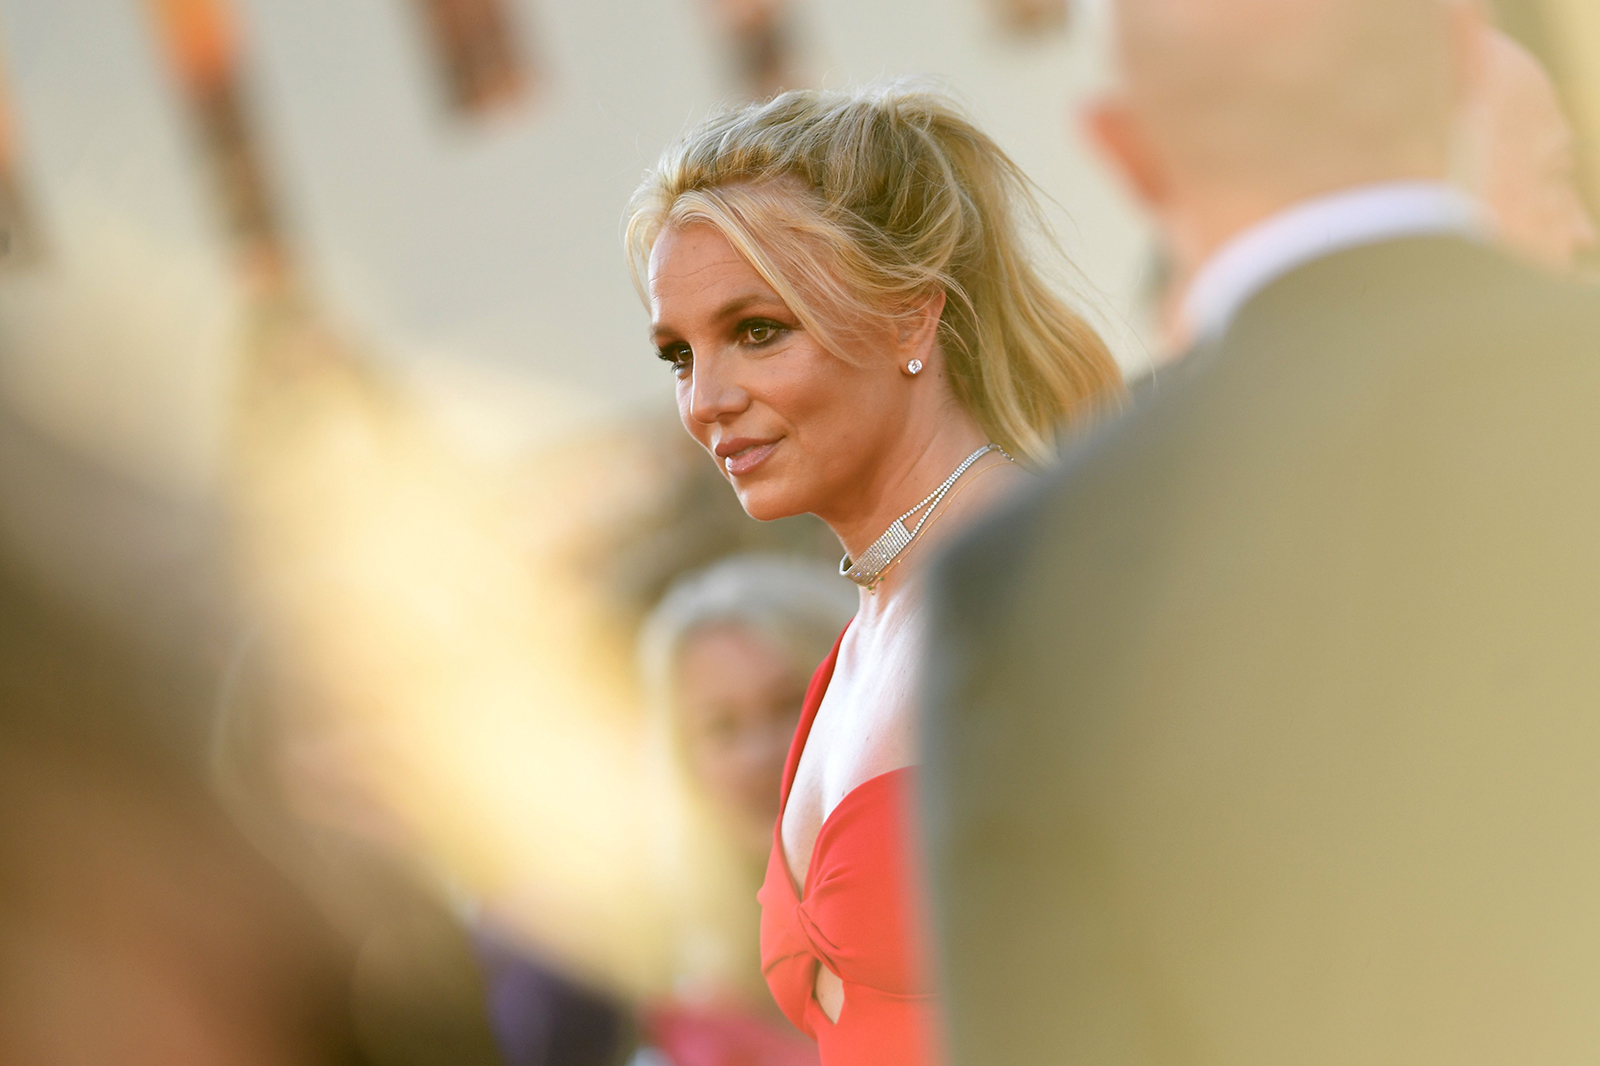 Read the full transcript of Britney Spears' court hearing statement